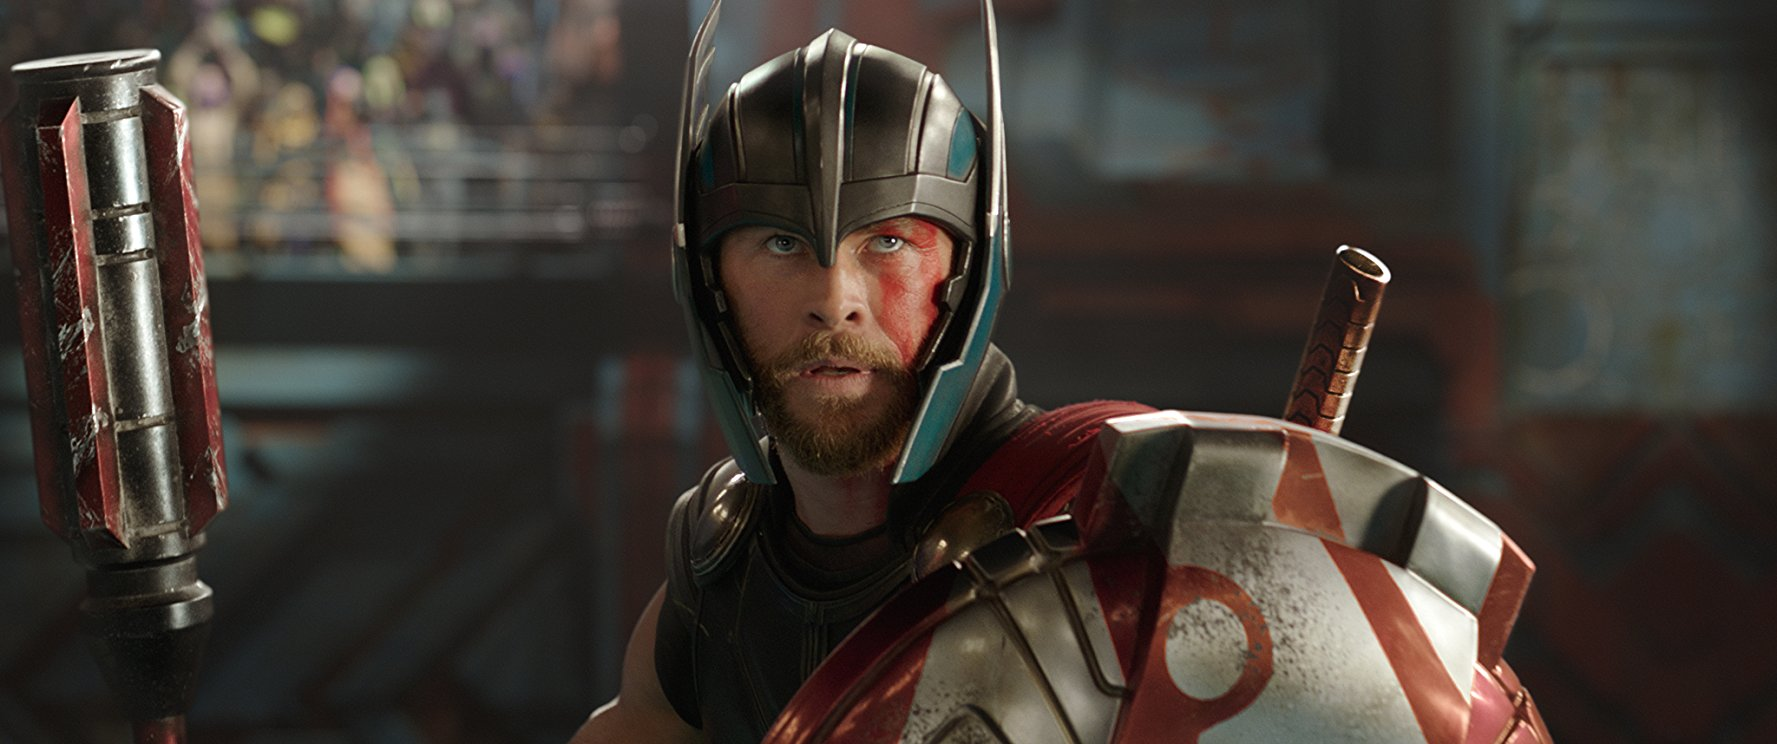 Recenzia na film Thor: Ragnarok: Marvel rule them all